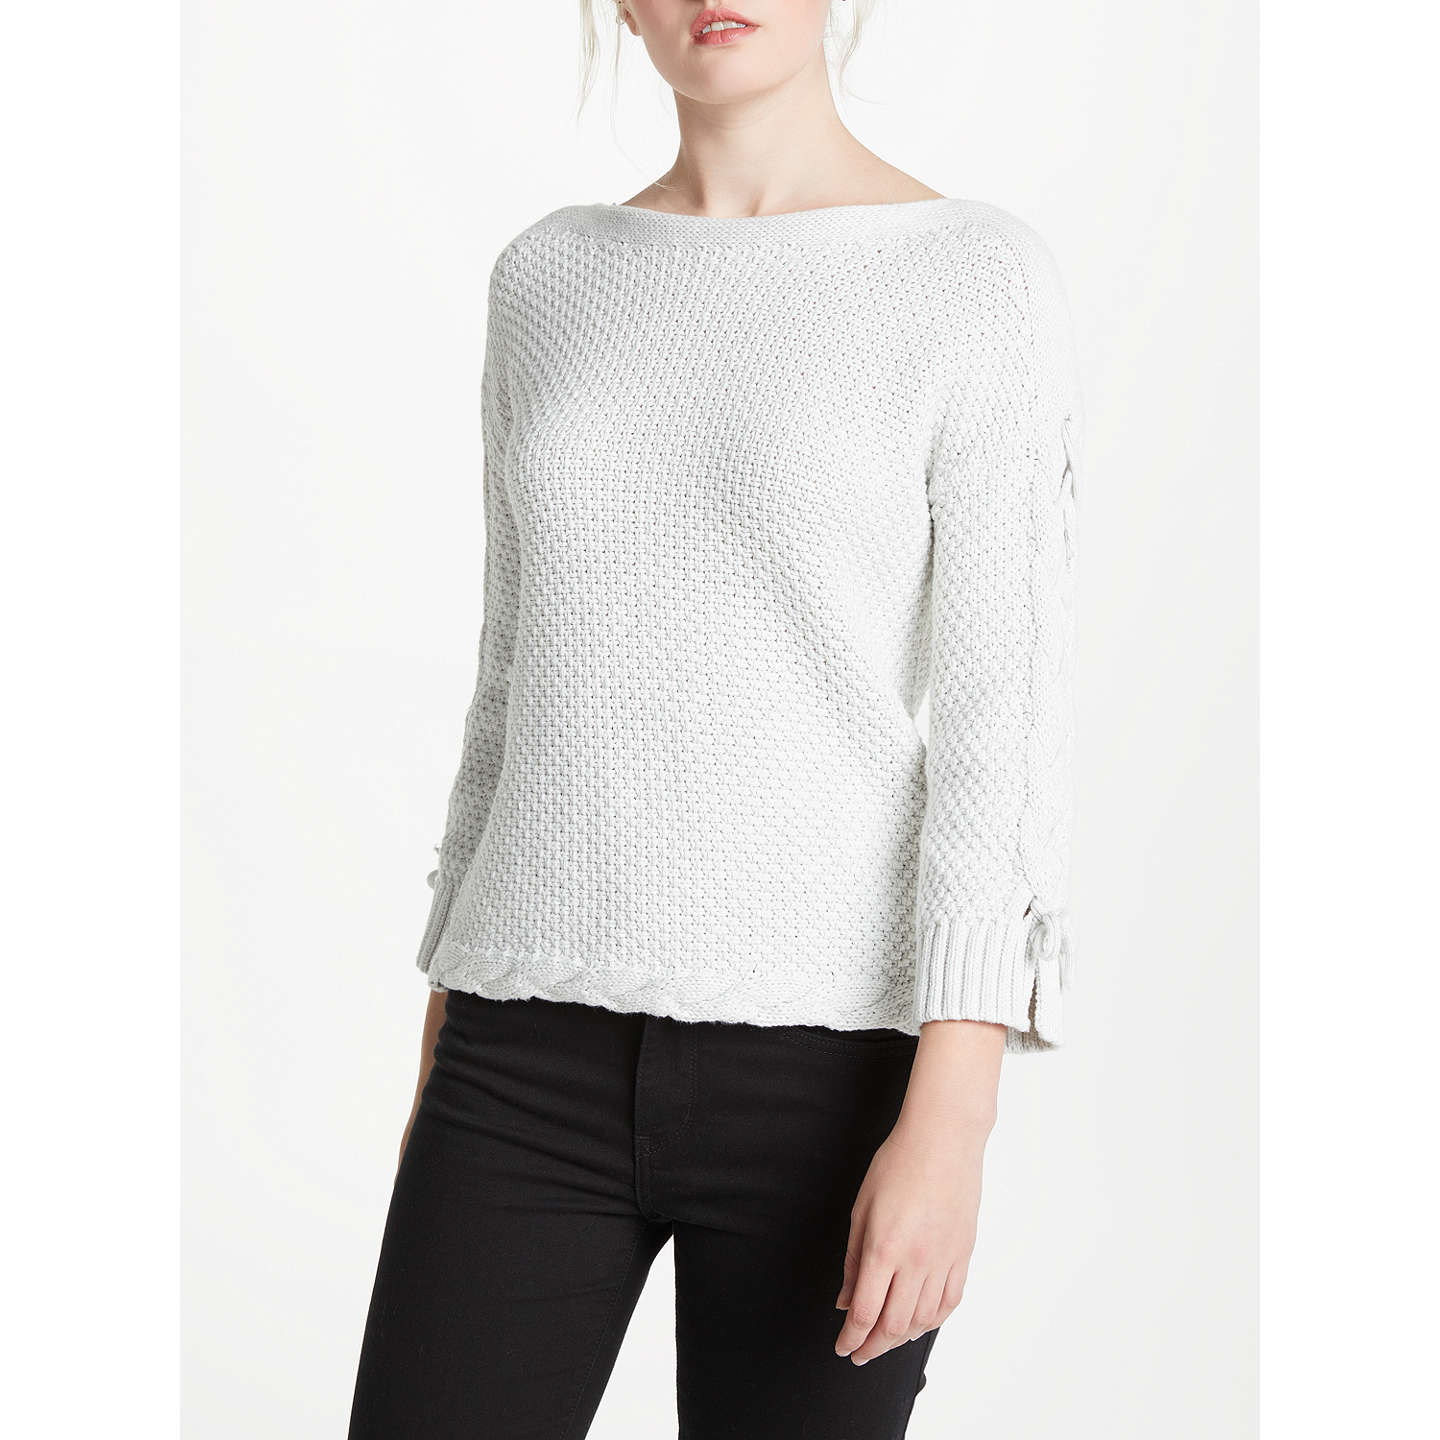 BuyOui Tie Sleeve Knit, Light Grey, 8 Online at johnlewis.com